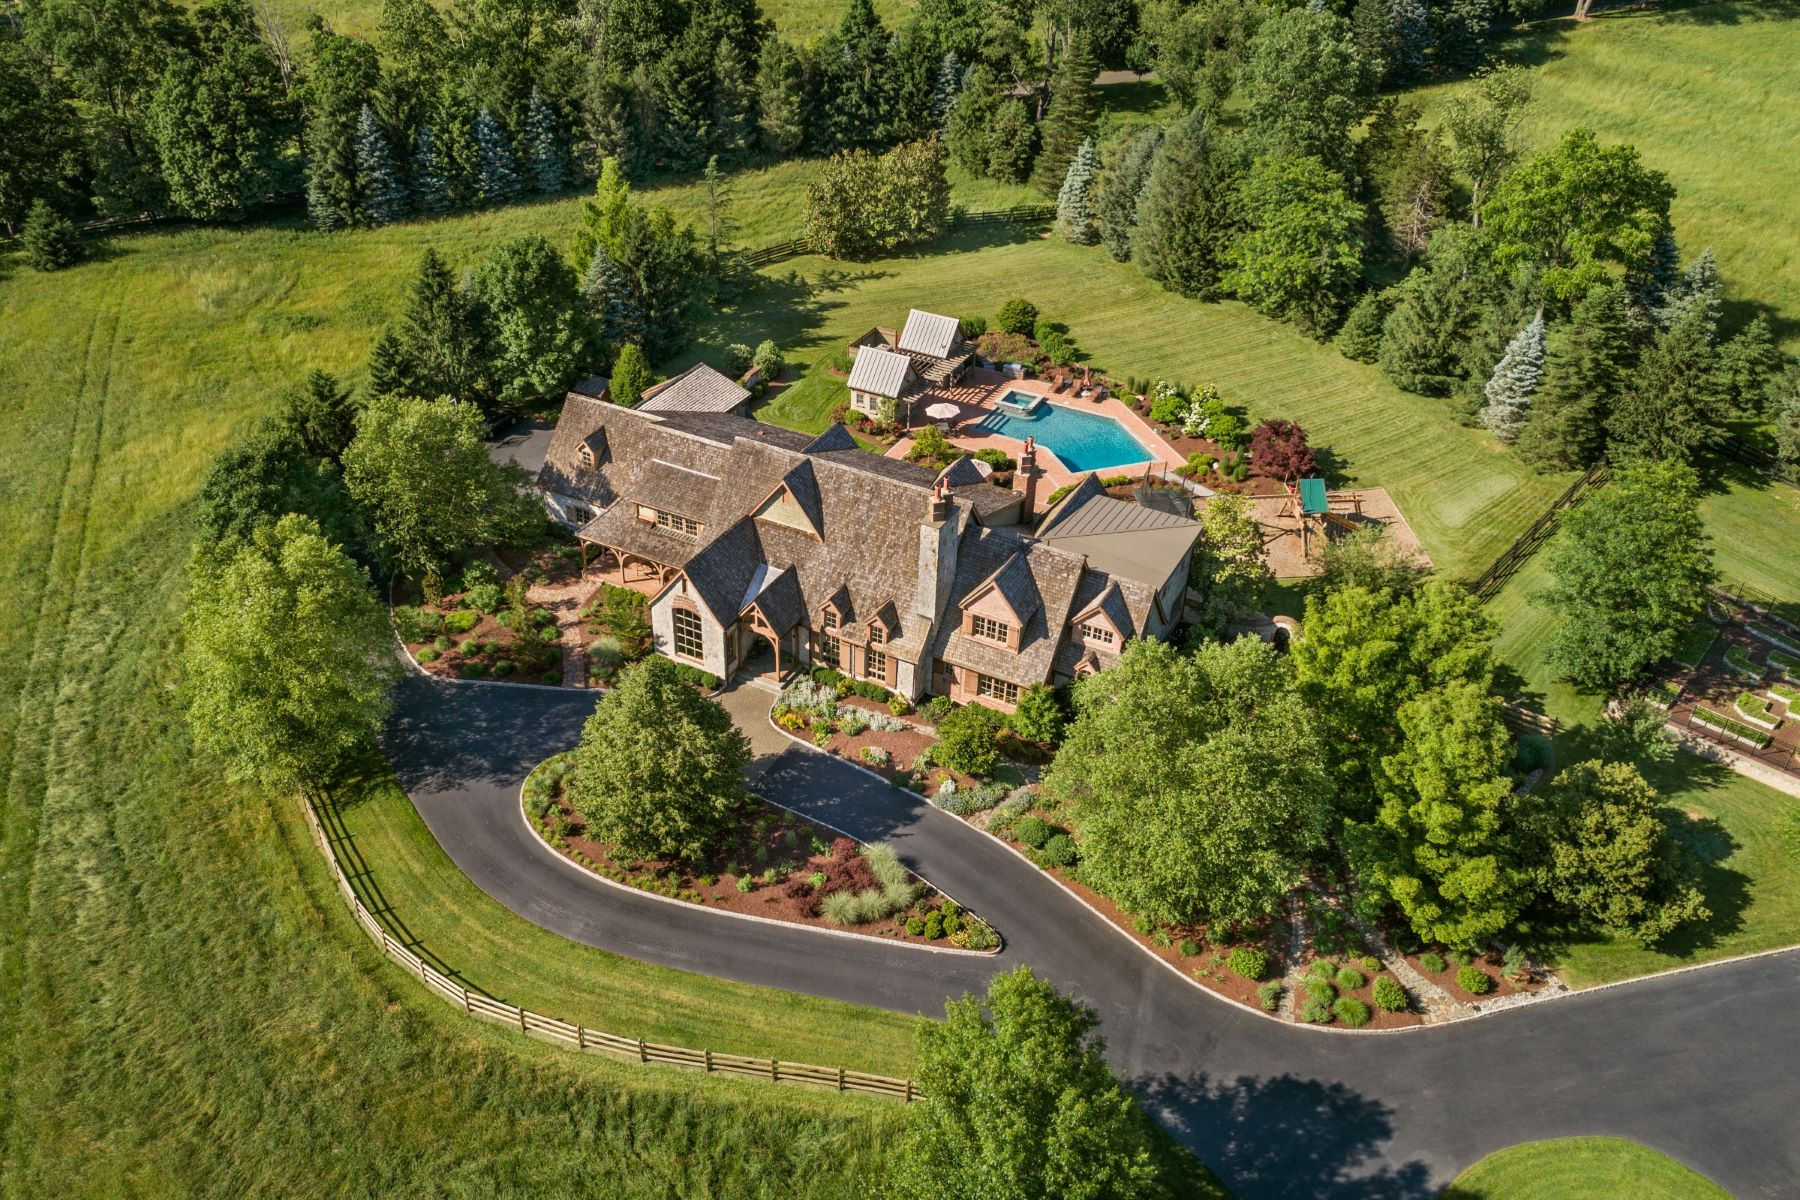 Single Family Home for Sale at Far Hills Country Estate 100 Lake Road, Far Hills, New Jersey 07931 United States